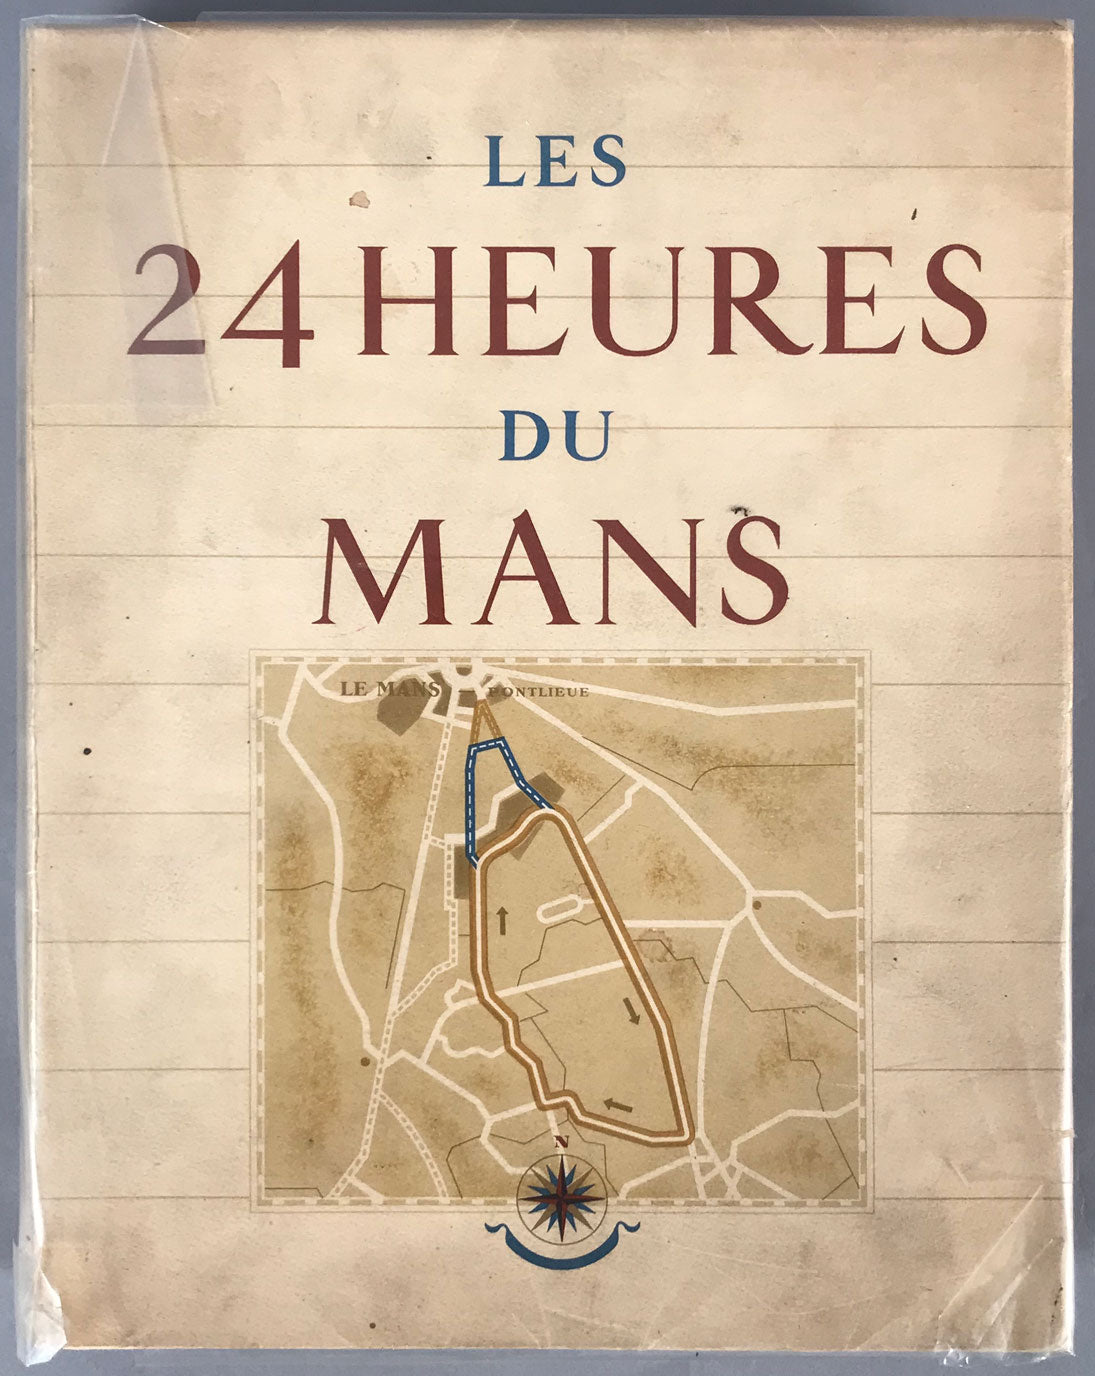 Les 24 Heures du Mans book by Roger Labric, 1949, illustrated by Geo Ham - $575.00